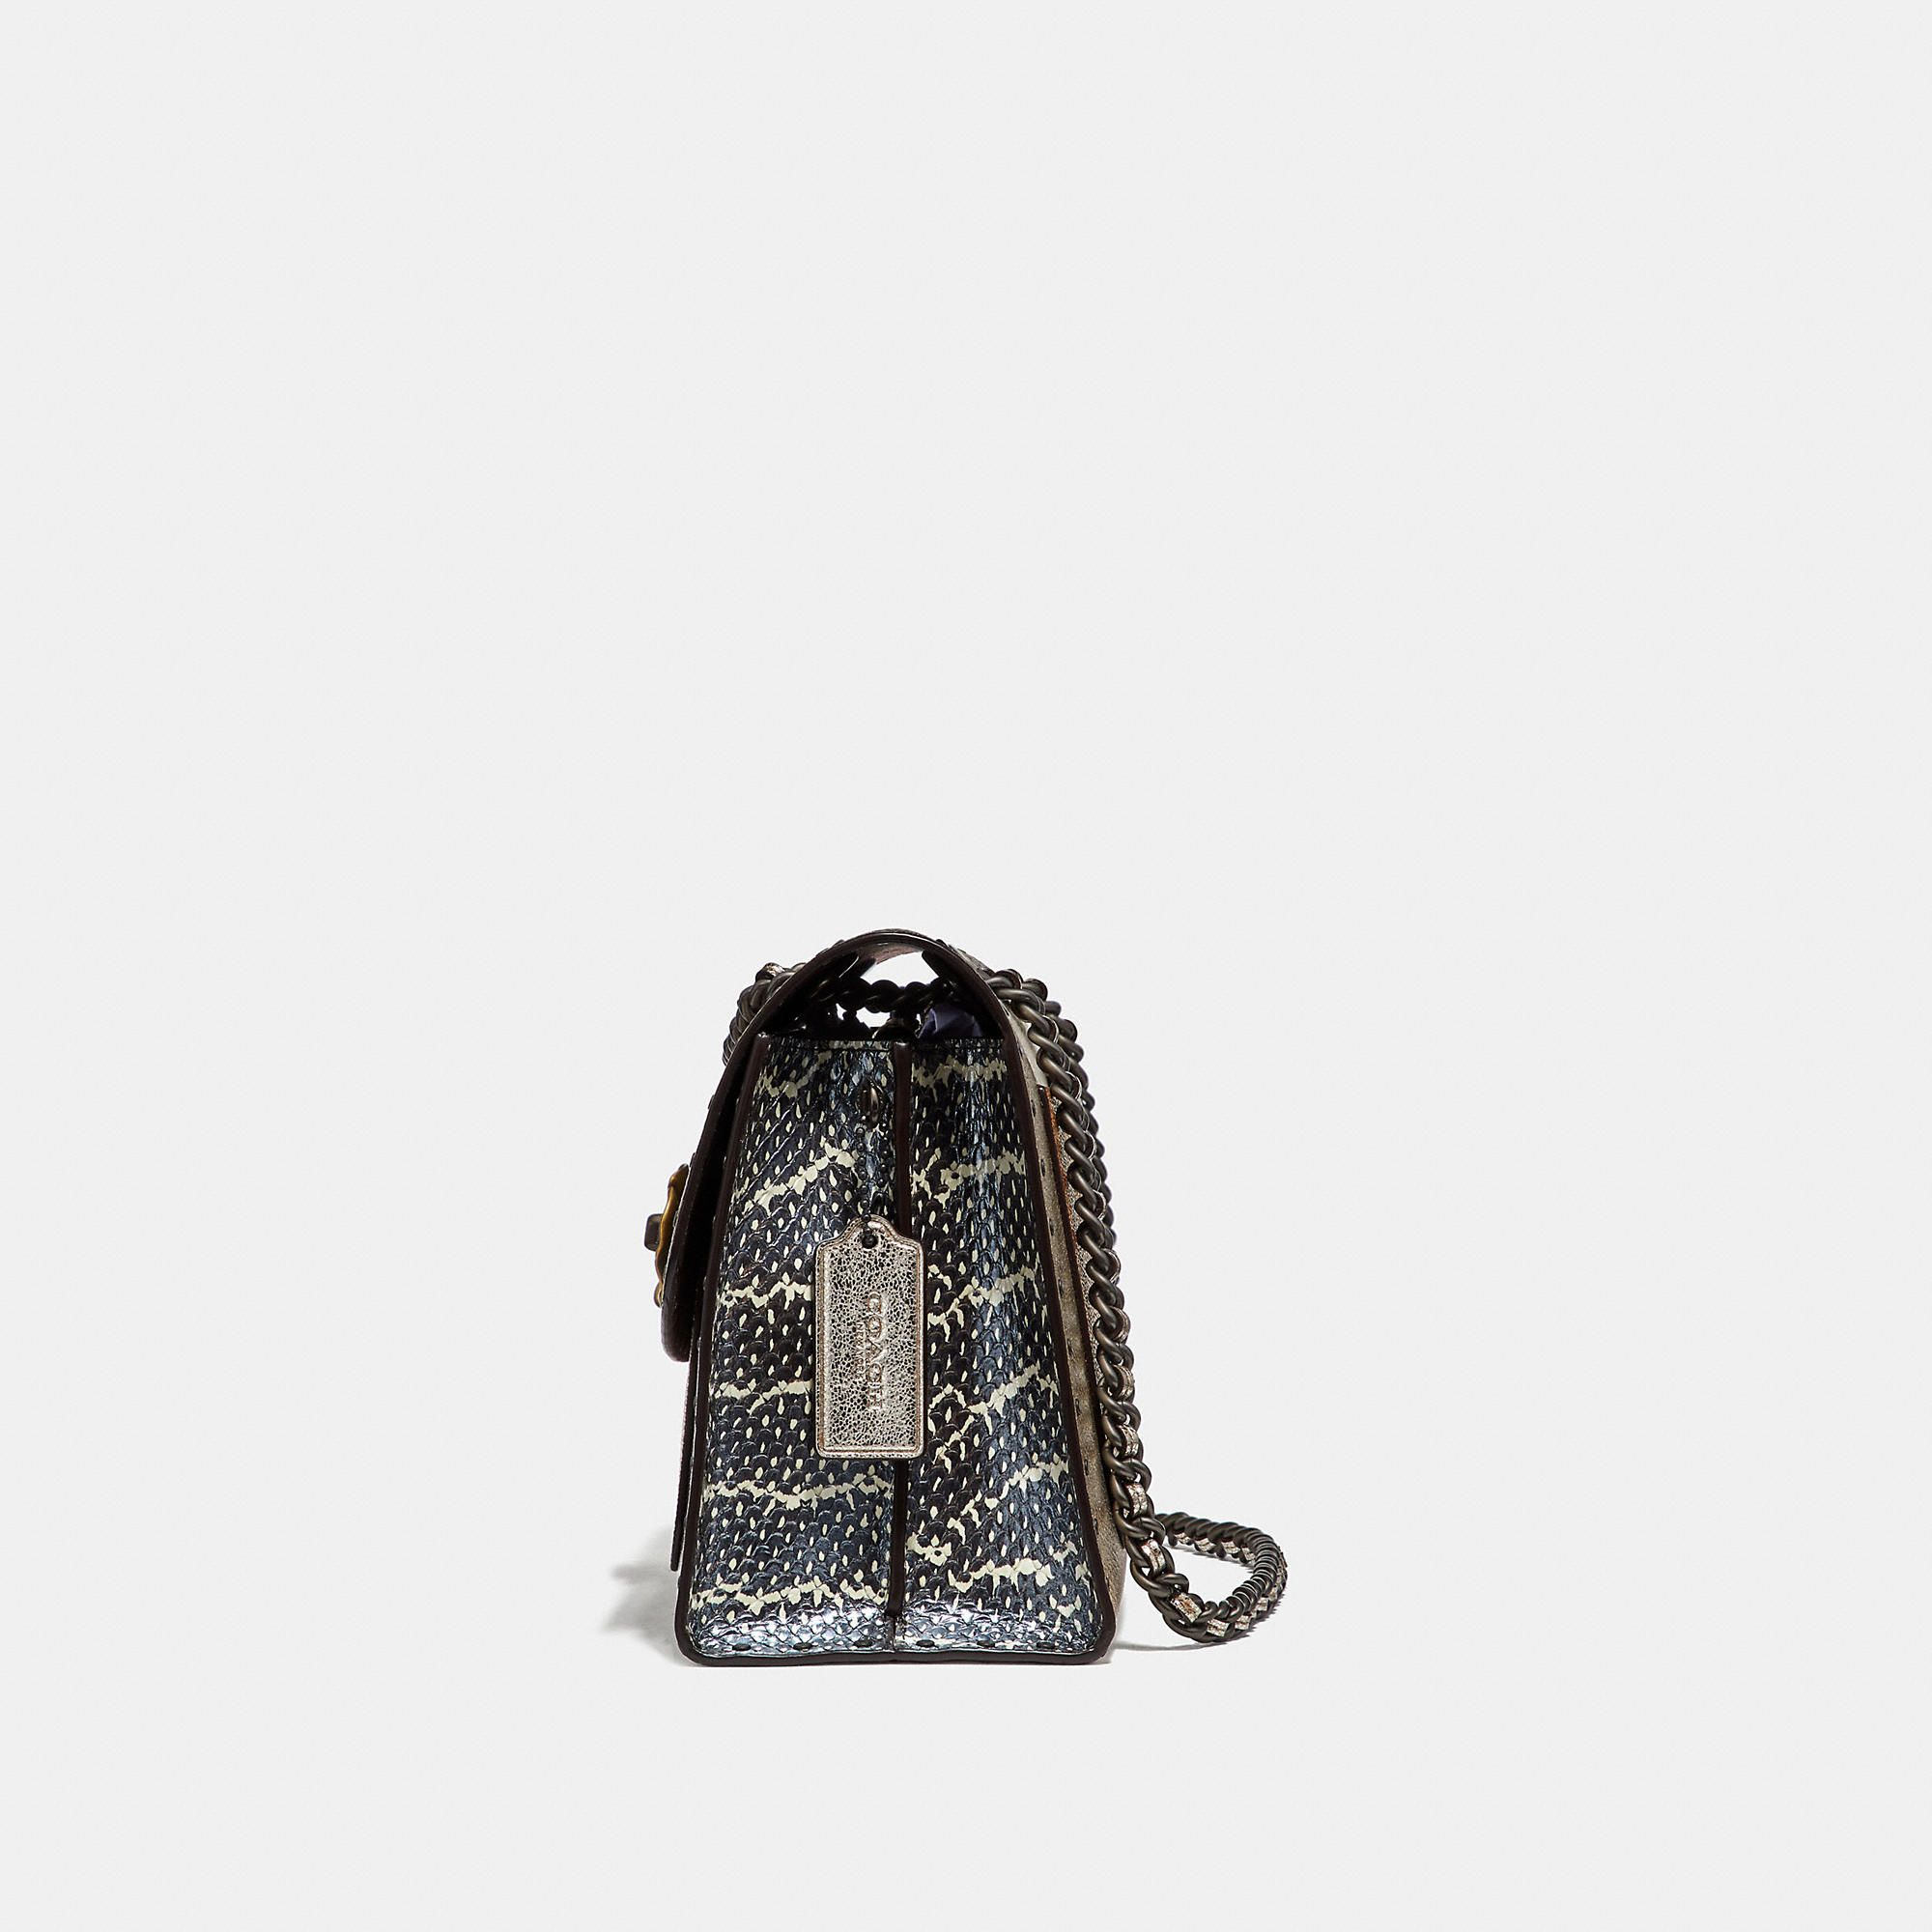 77a98776f1d7d COACH Parker In Signature Canvas With Rivets And Snakeskin Detail - Women s  Purses